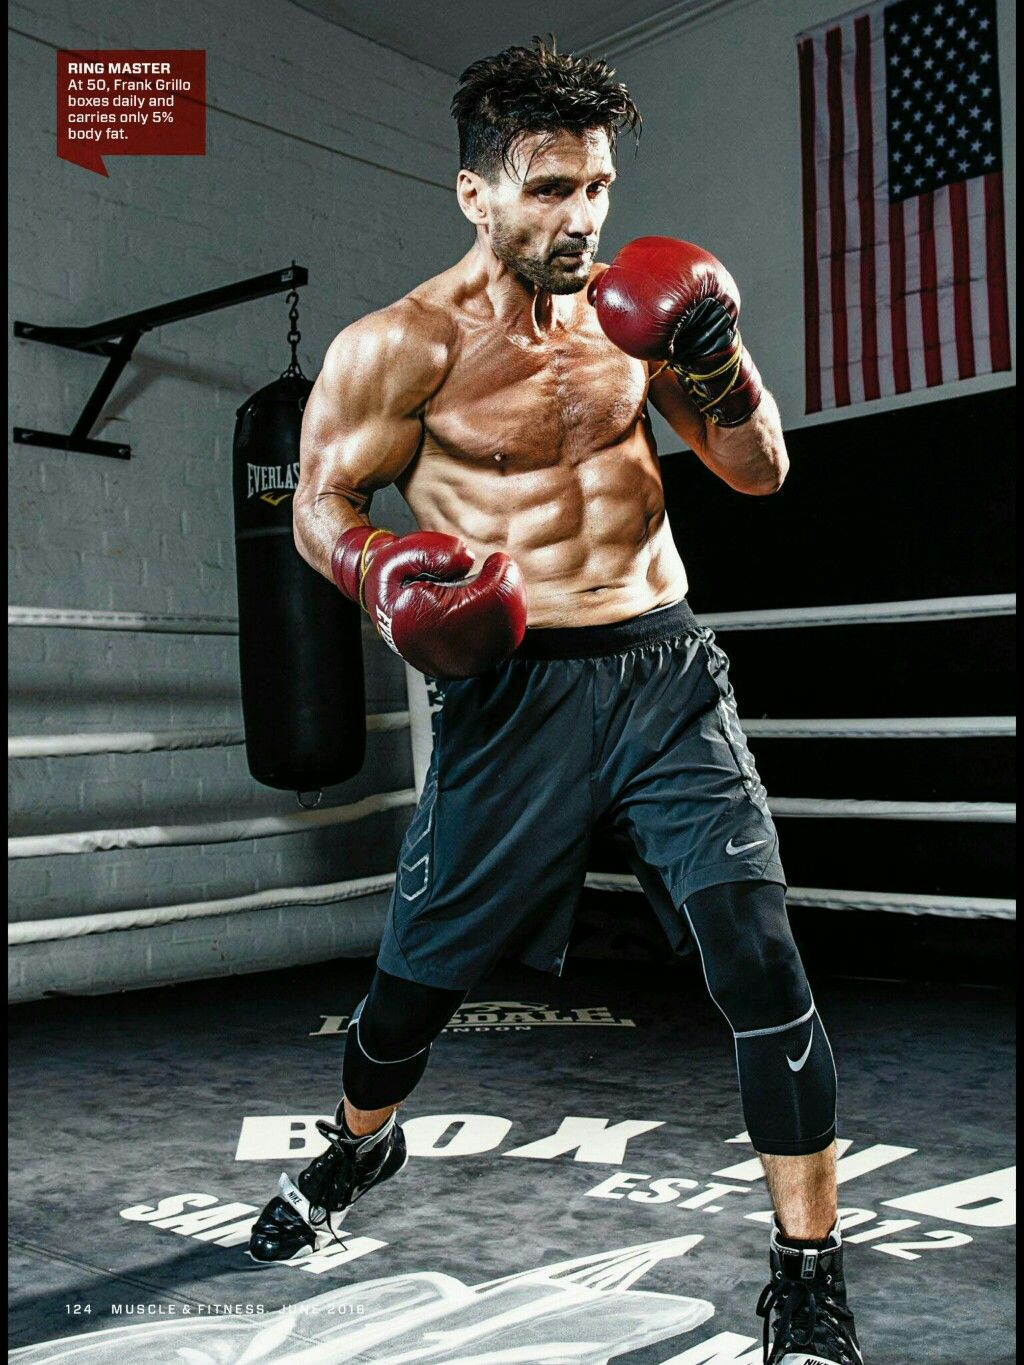 Frank Grillo is 51 and is in better shape than most 20